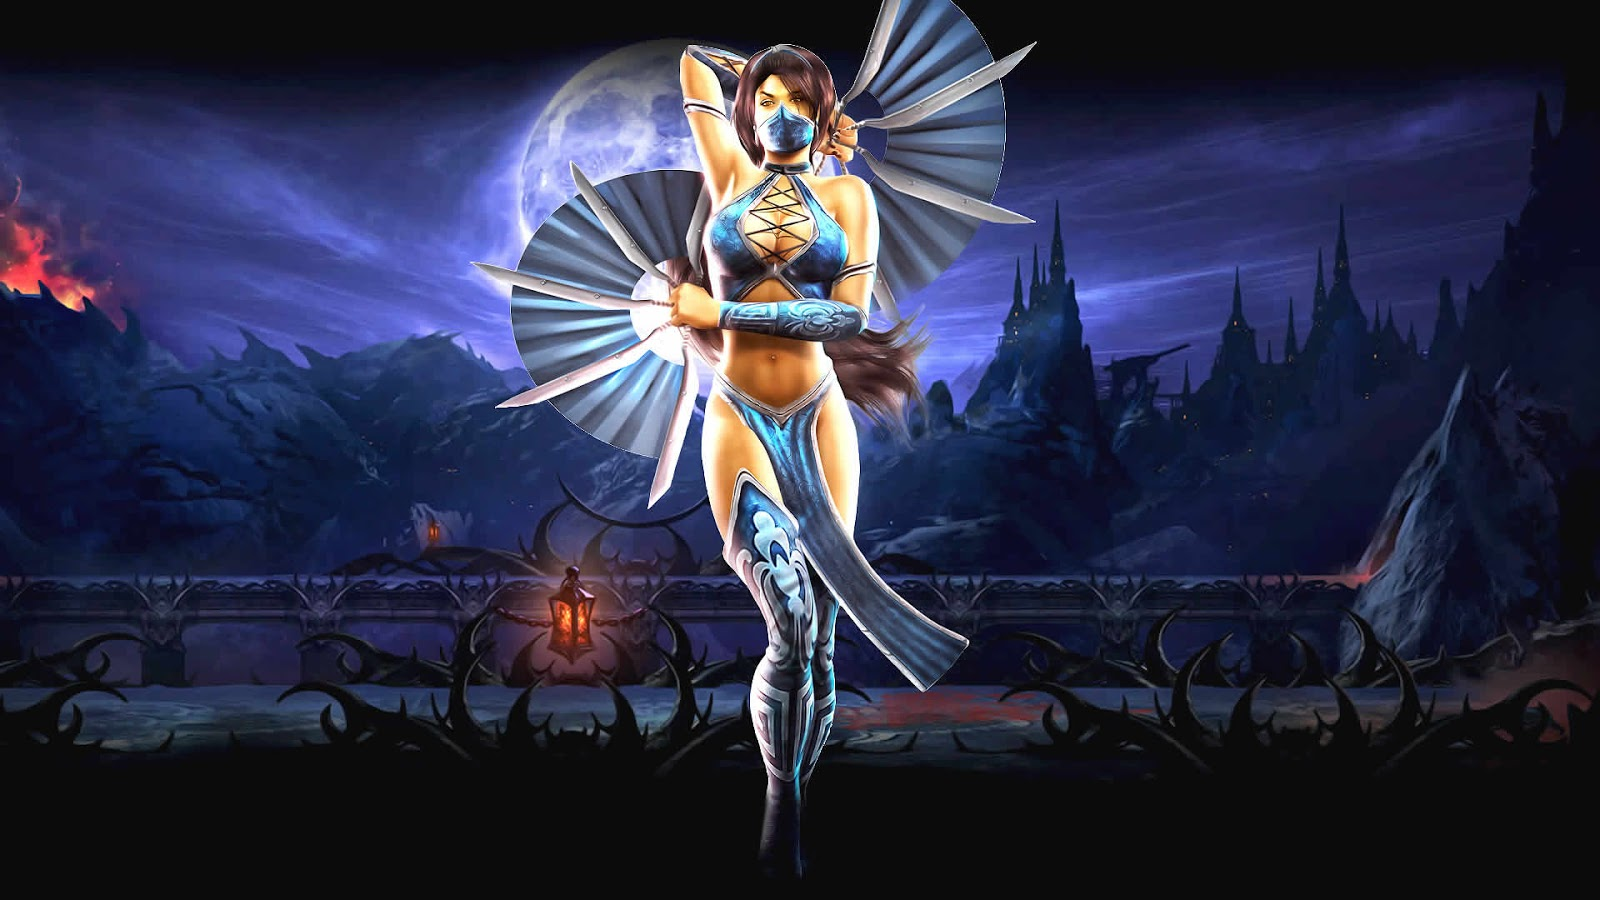 Mortal kombat HD & Widescreen Wallpaper 0.631736068506096